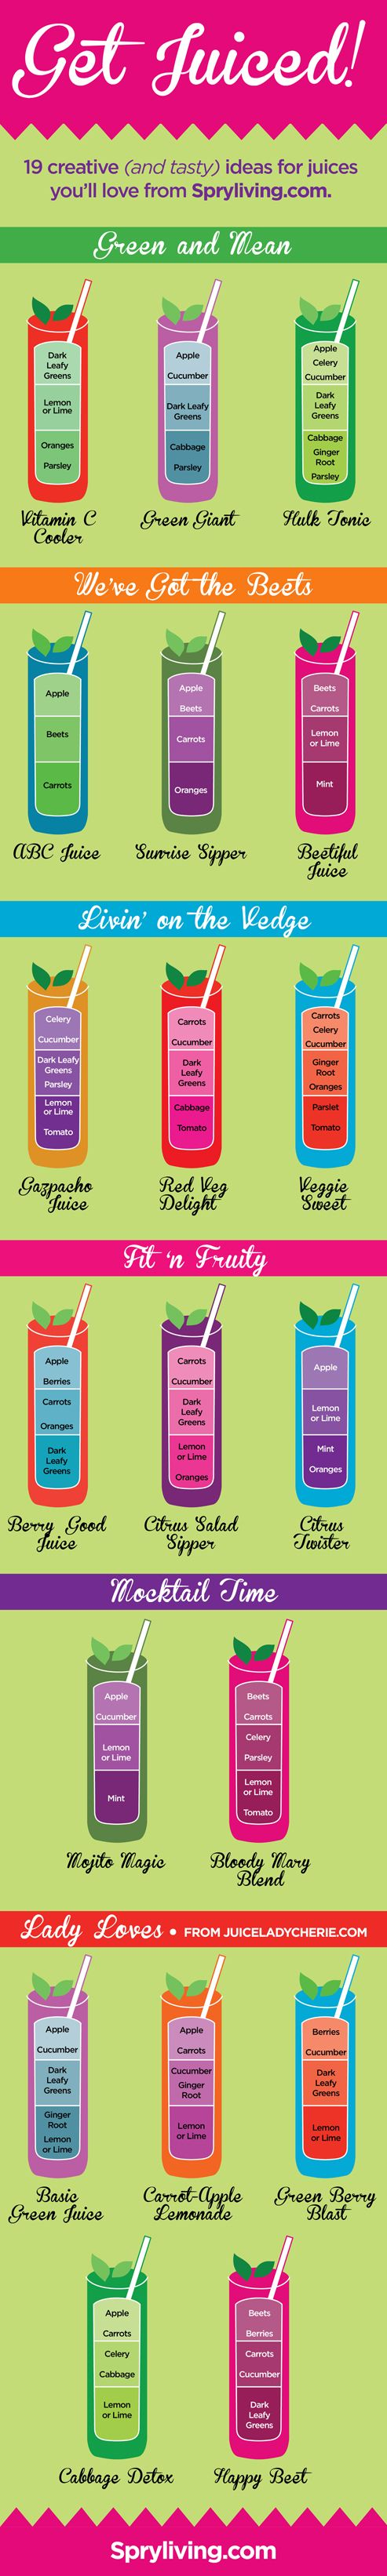 The Best Juicing Recipes Ever! Find the best recipe for anything and everything that you could need with this easy and simple chart! -Spry Living